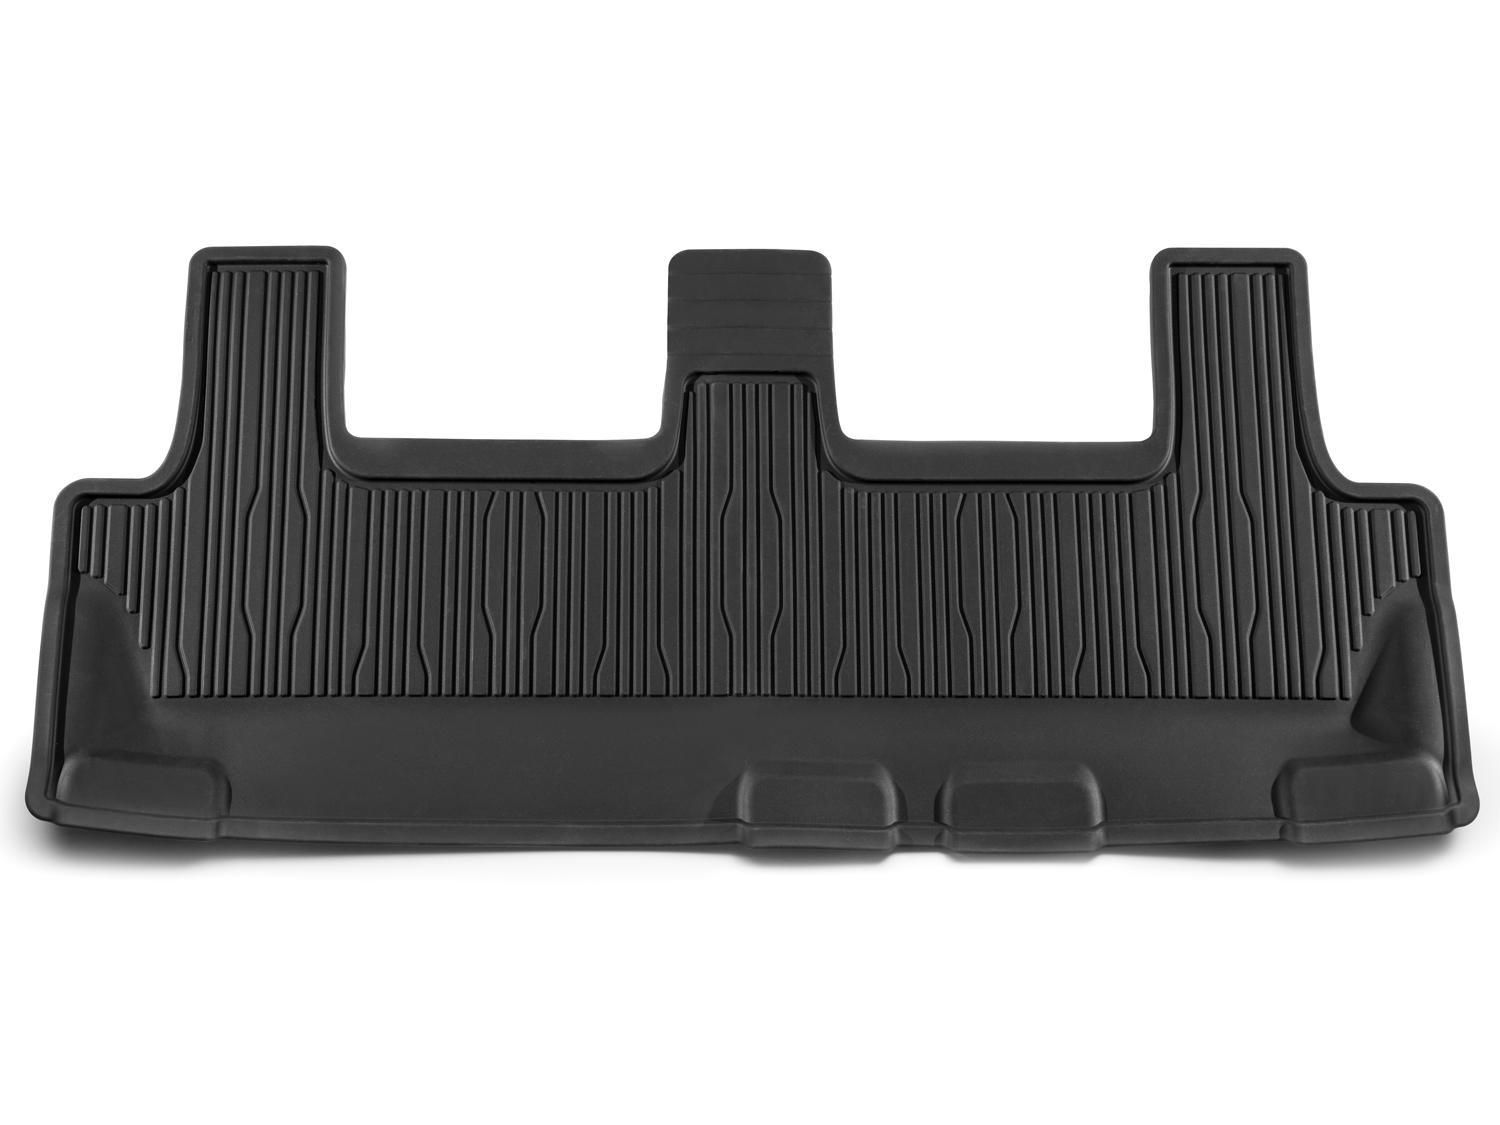 Floor Mats - All-Weather Rubber, Black, For 3rd Row